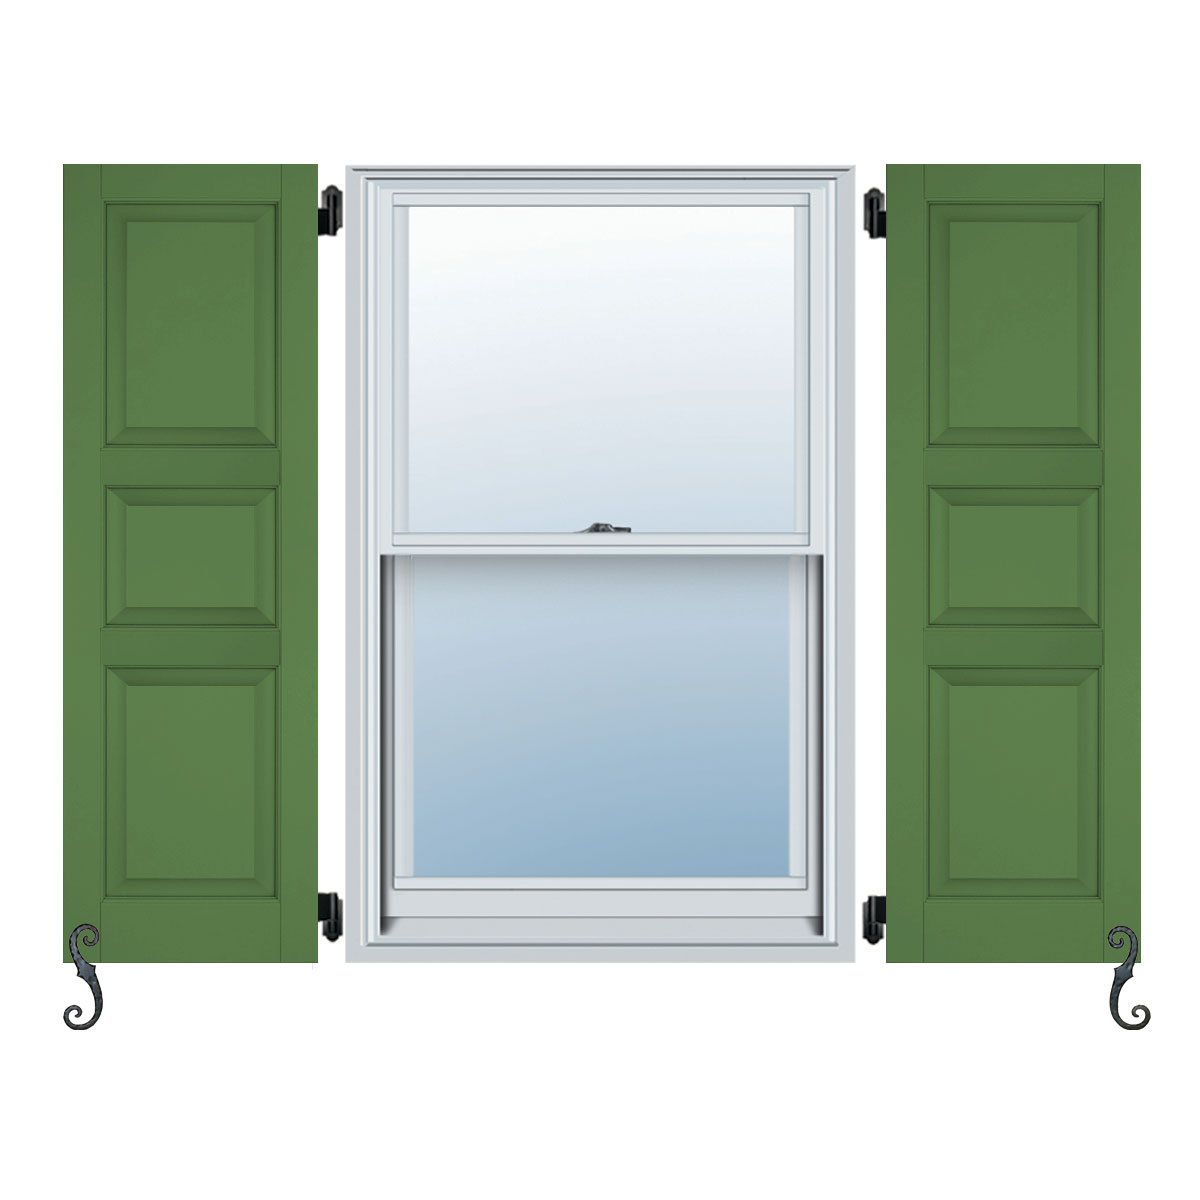 Atlantic Classic Three Panel Small Center 40 20 40 Raised Panel Shutters Per Pair